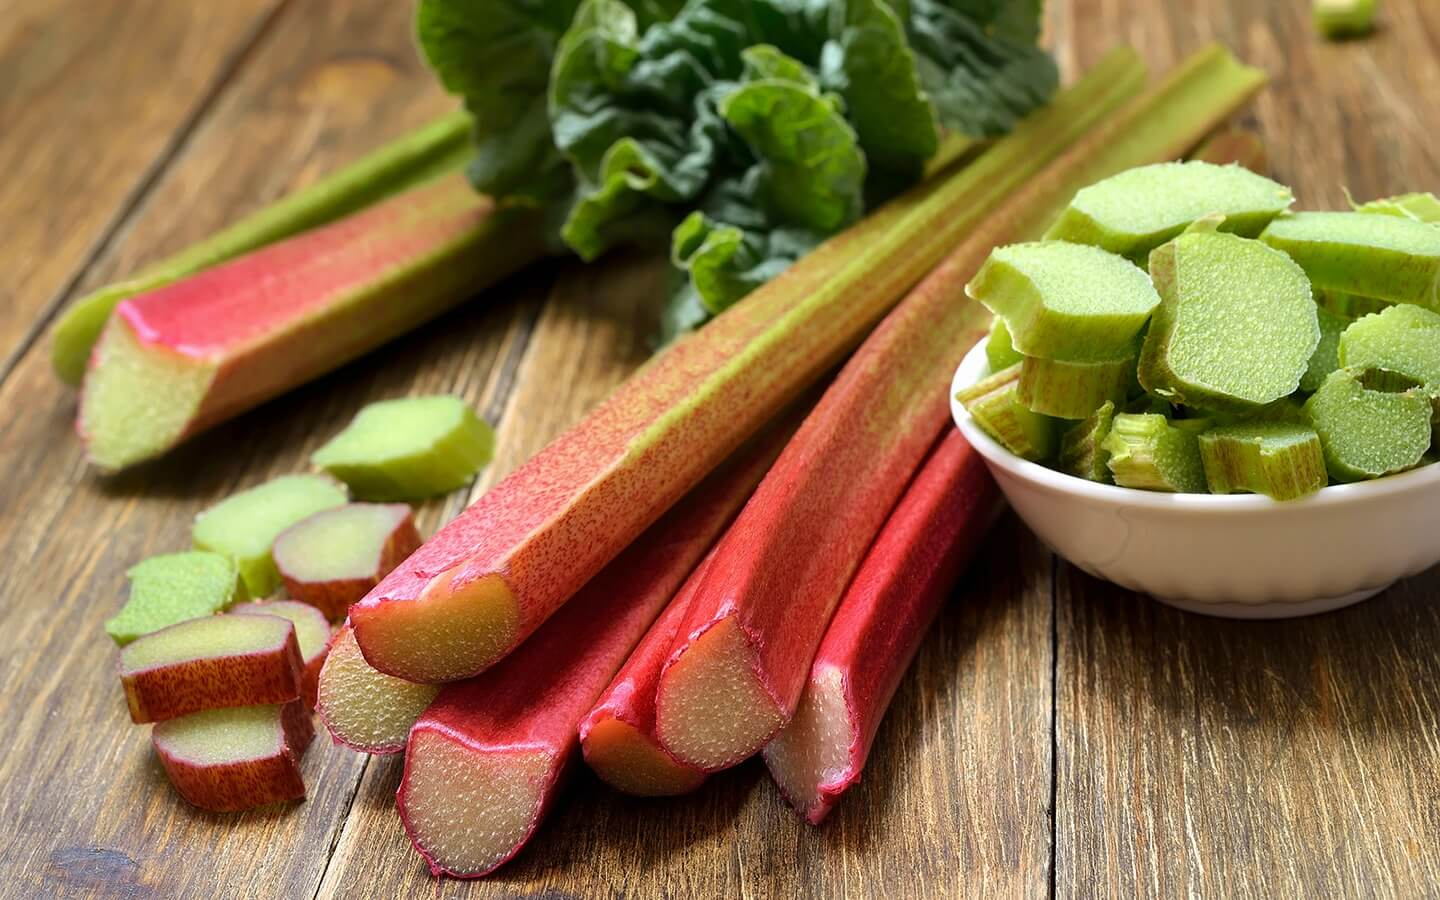 rhubarb on a table